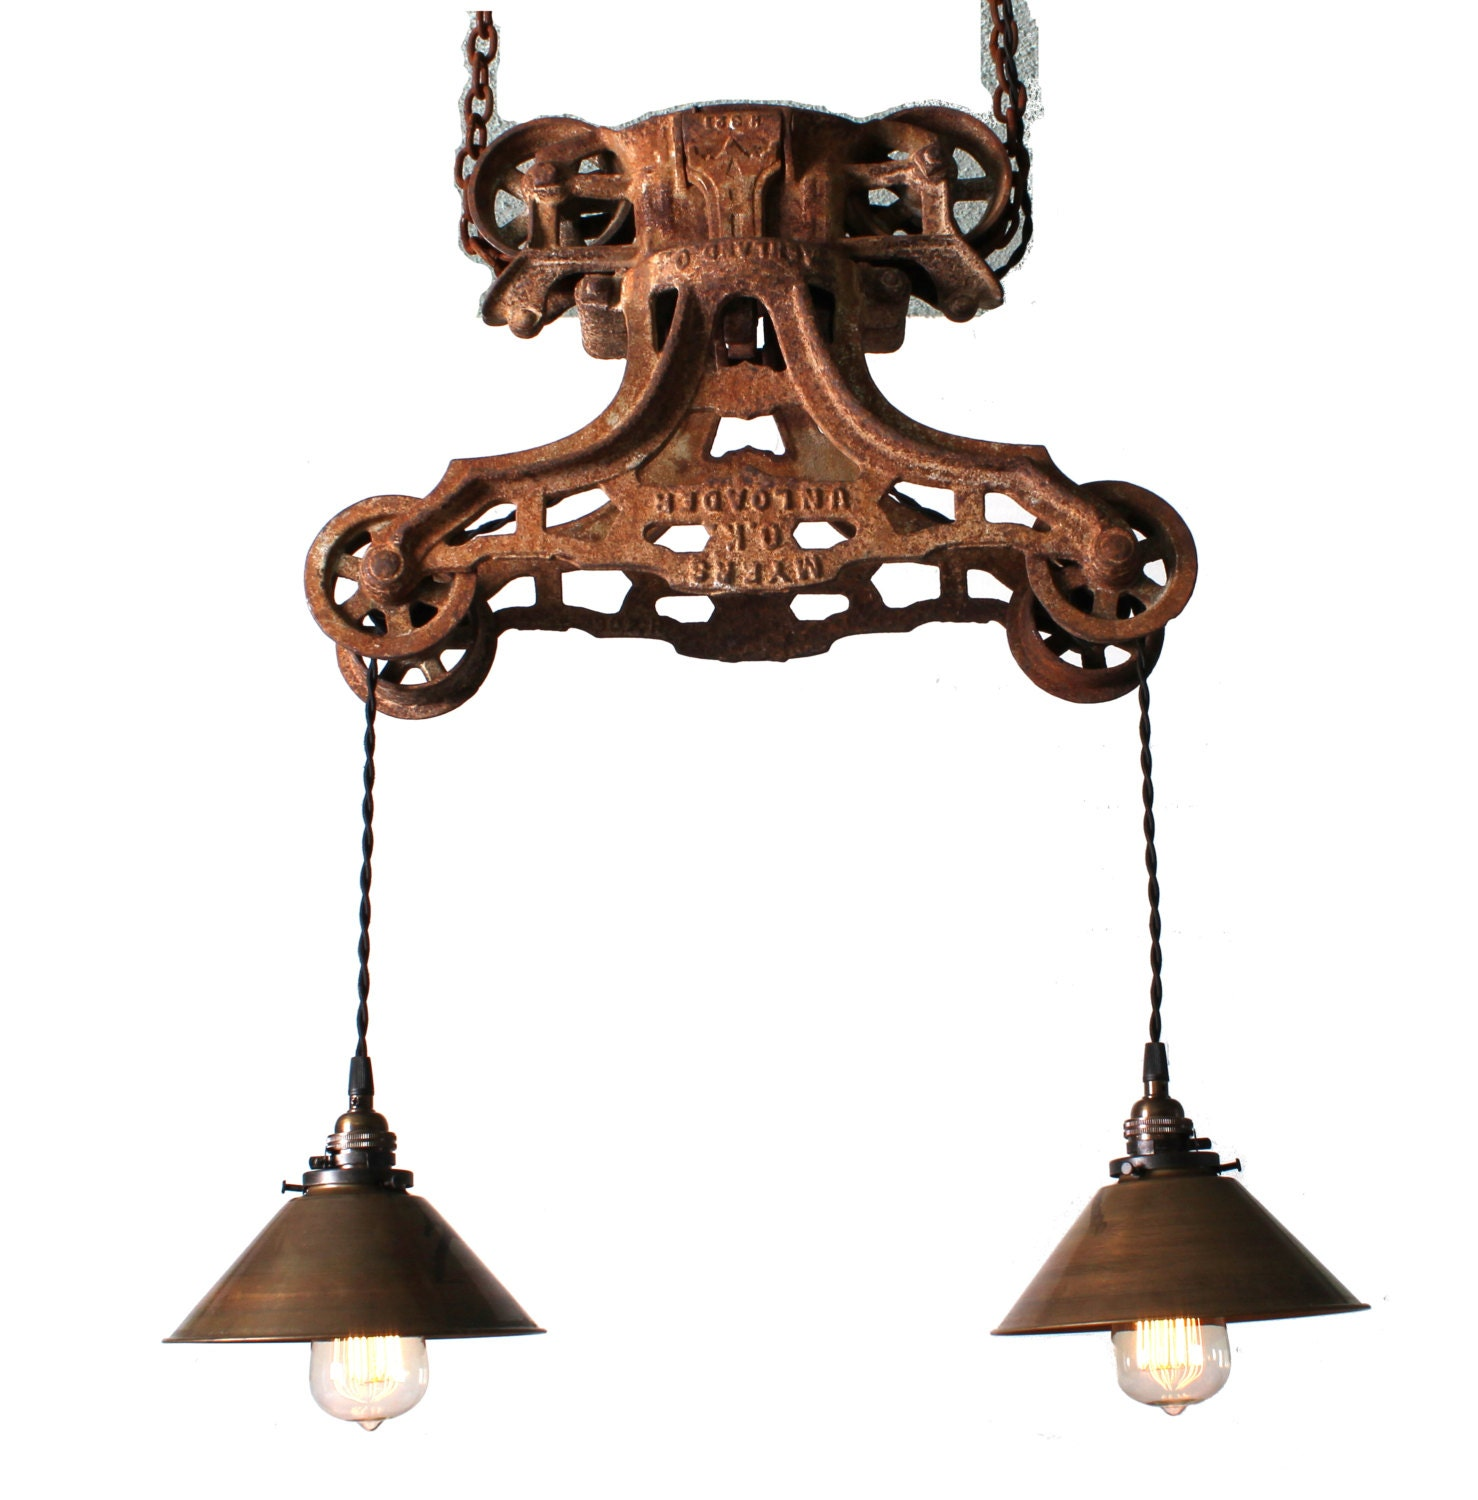 Just Reduced Rustic Handmade 3 Bulb Hanging Light Fixture Or: Custom For Tamara: Vintage Barn Door Pulley By ParisEnvy